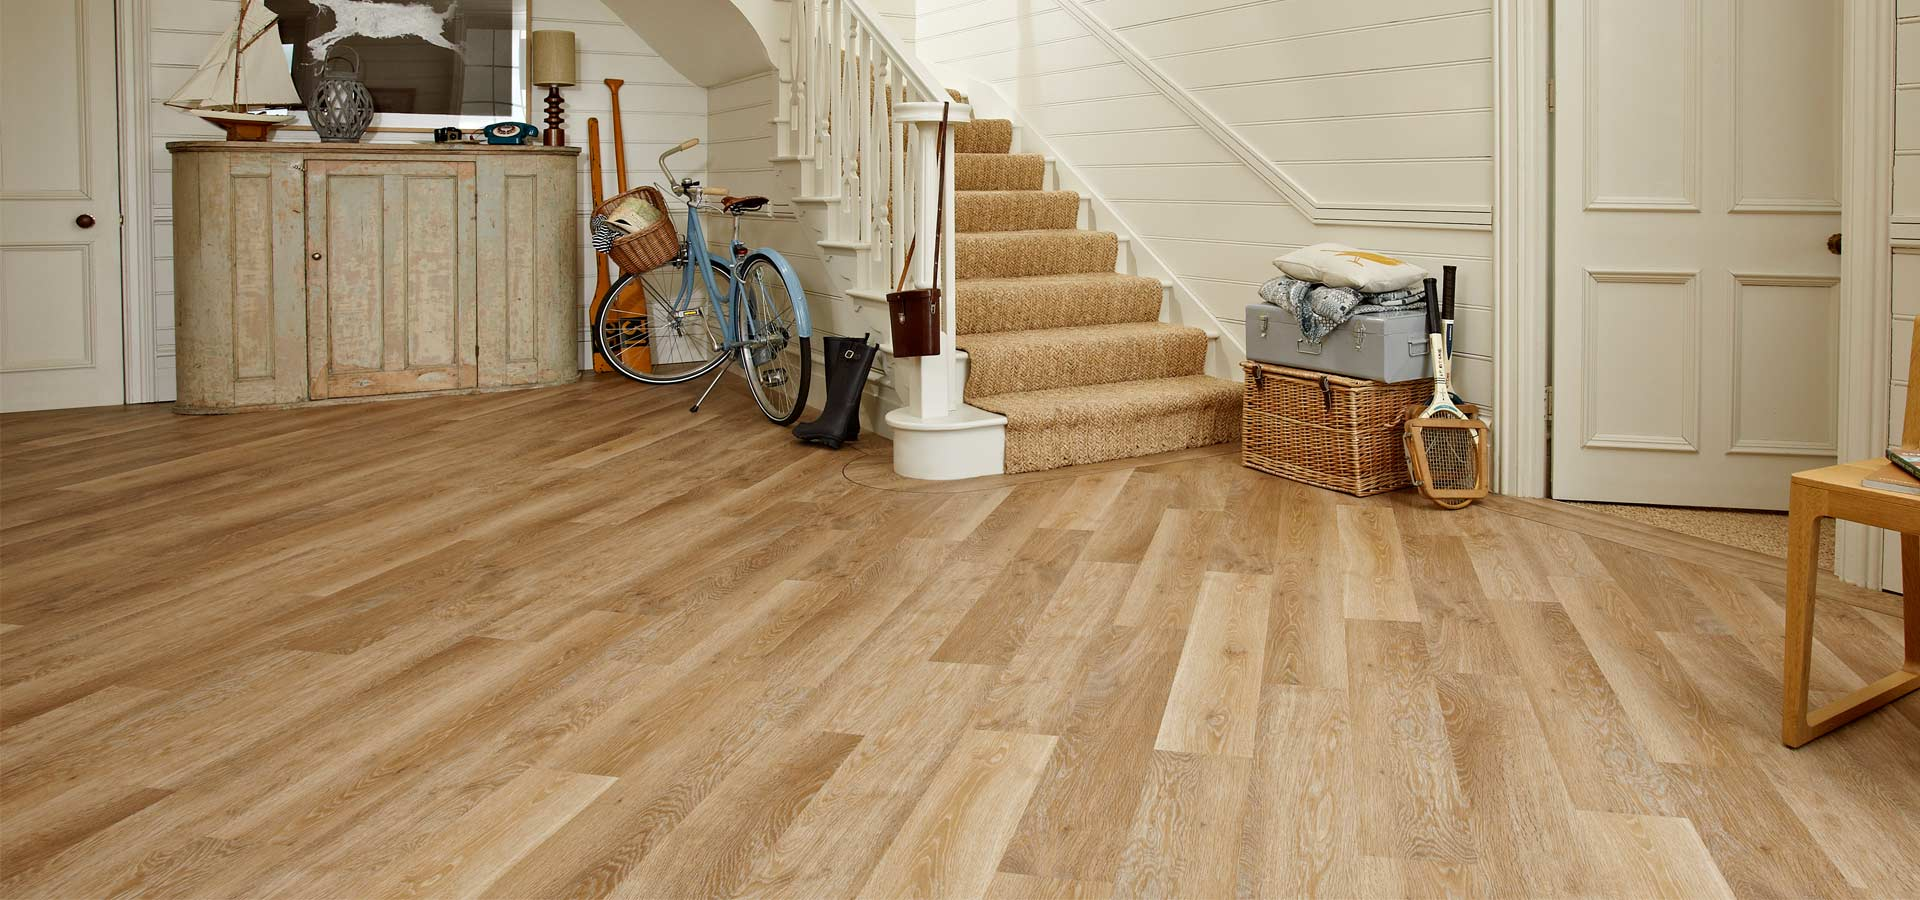 Amtico crestwood of lymington for Amtico flooring